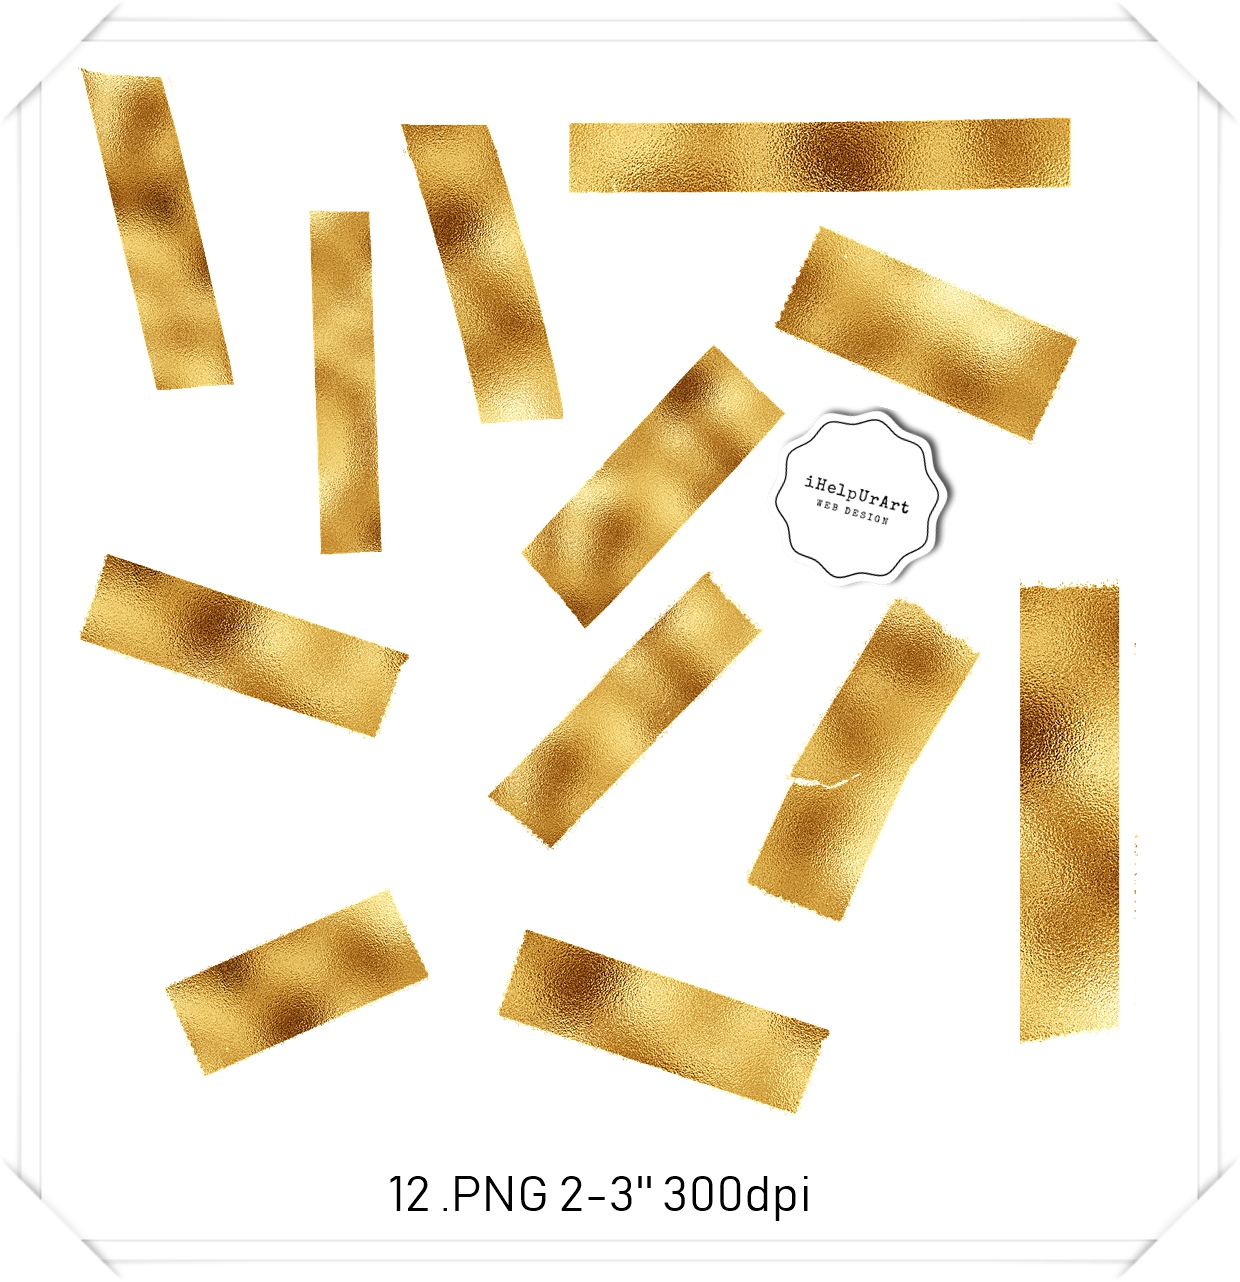 Gold foil washi tape clipart  example image 2